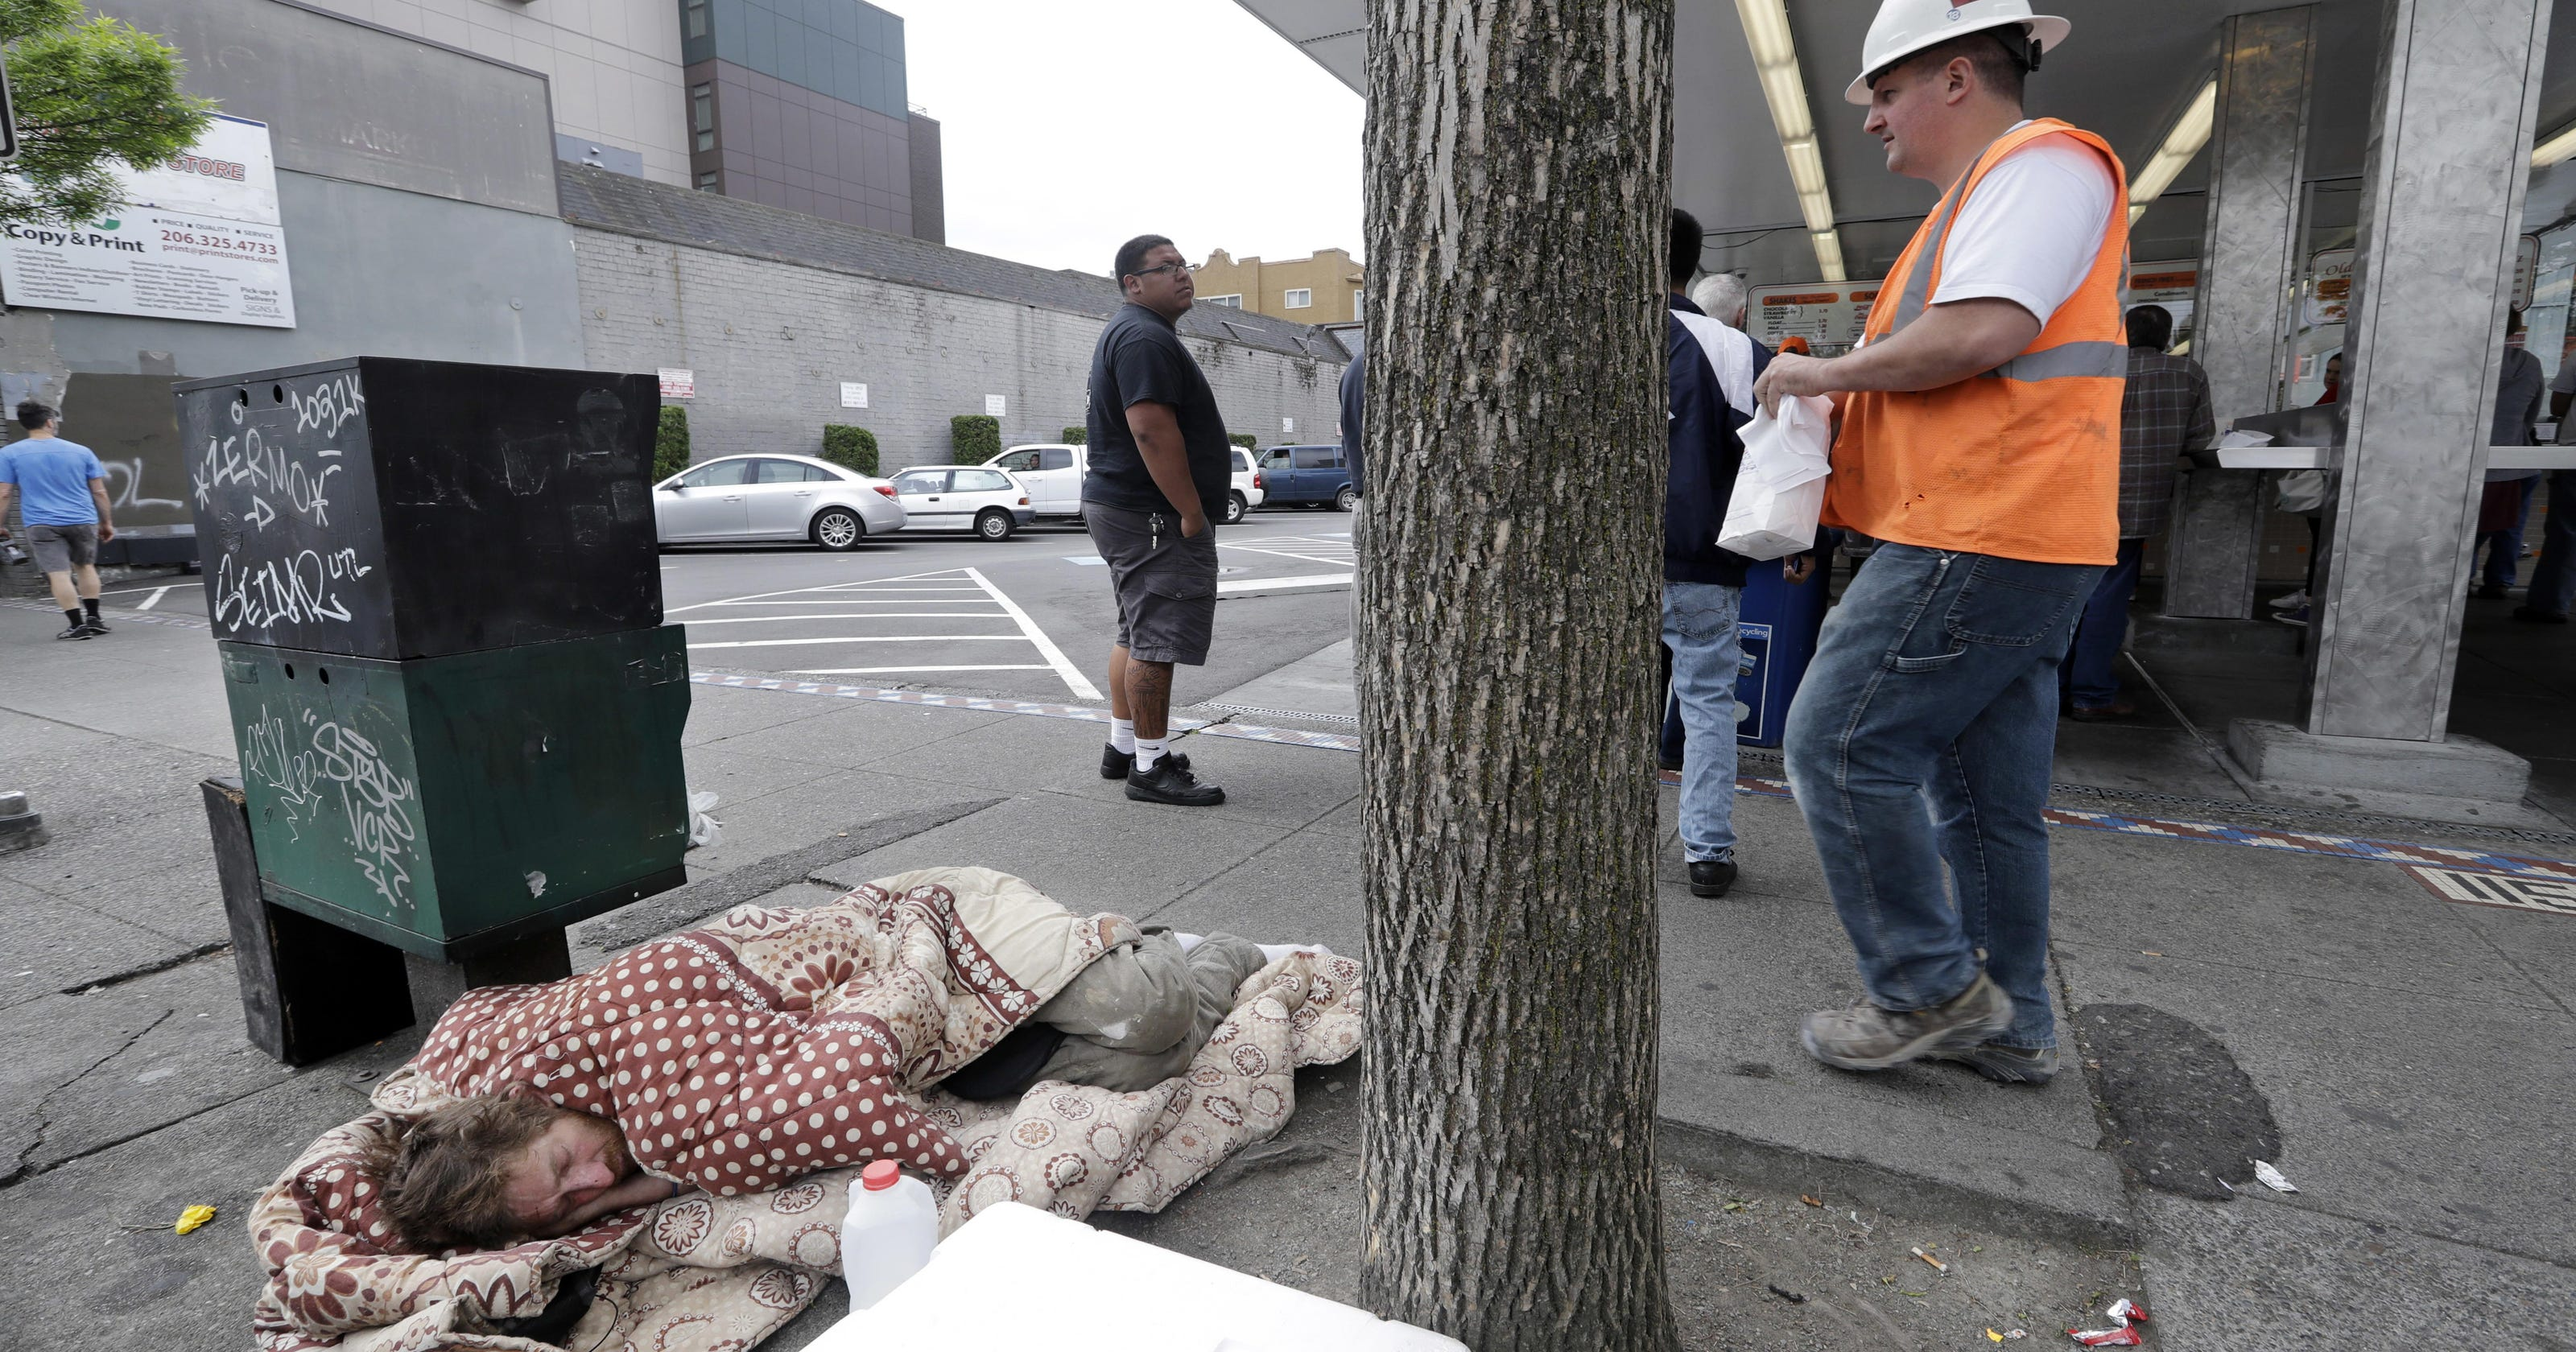 Homeless count up slightly, but declines in key cities